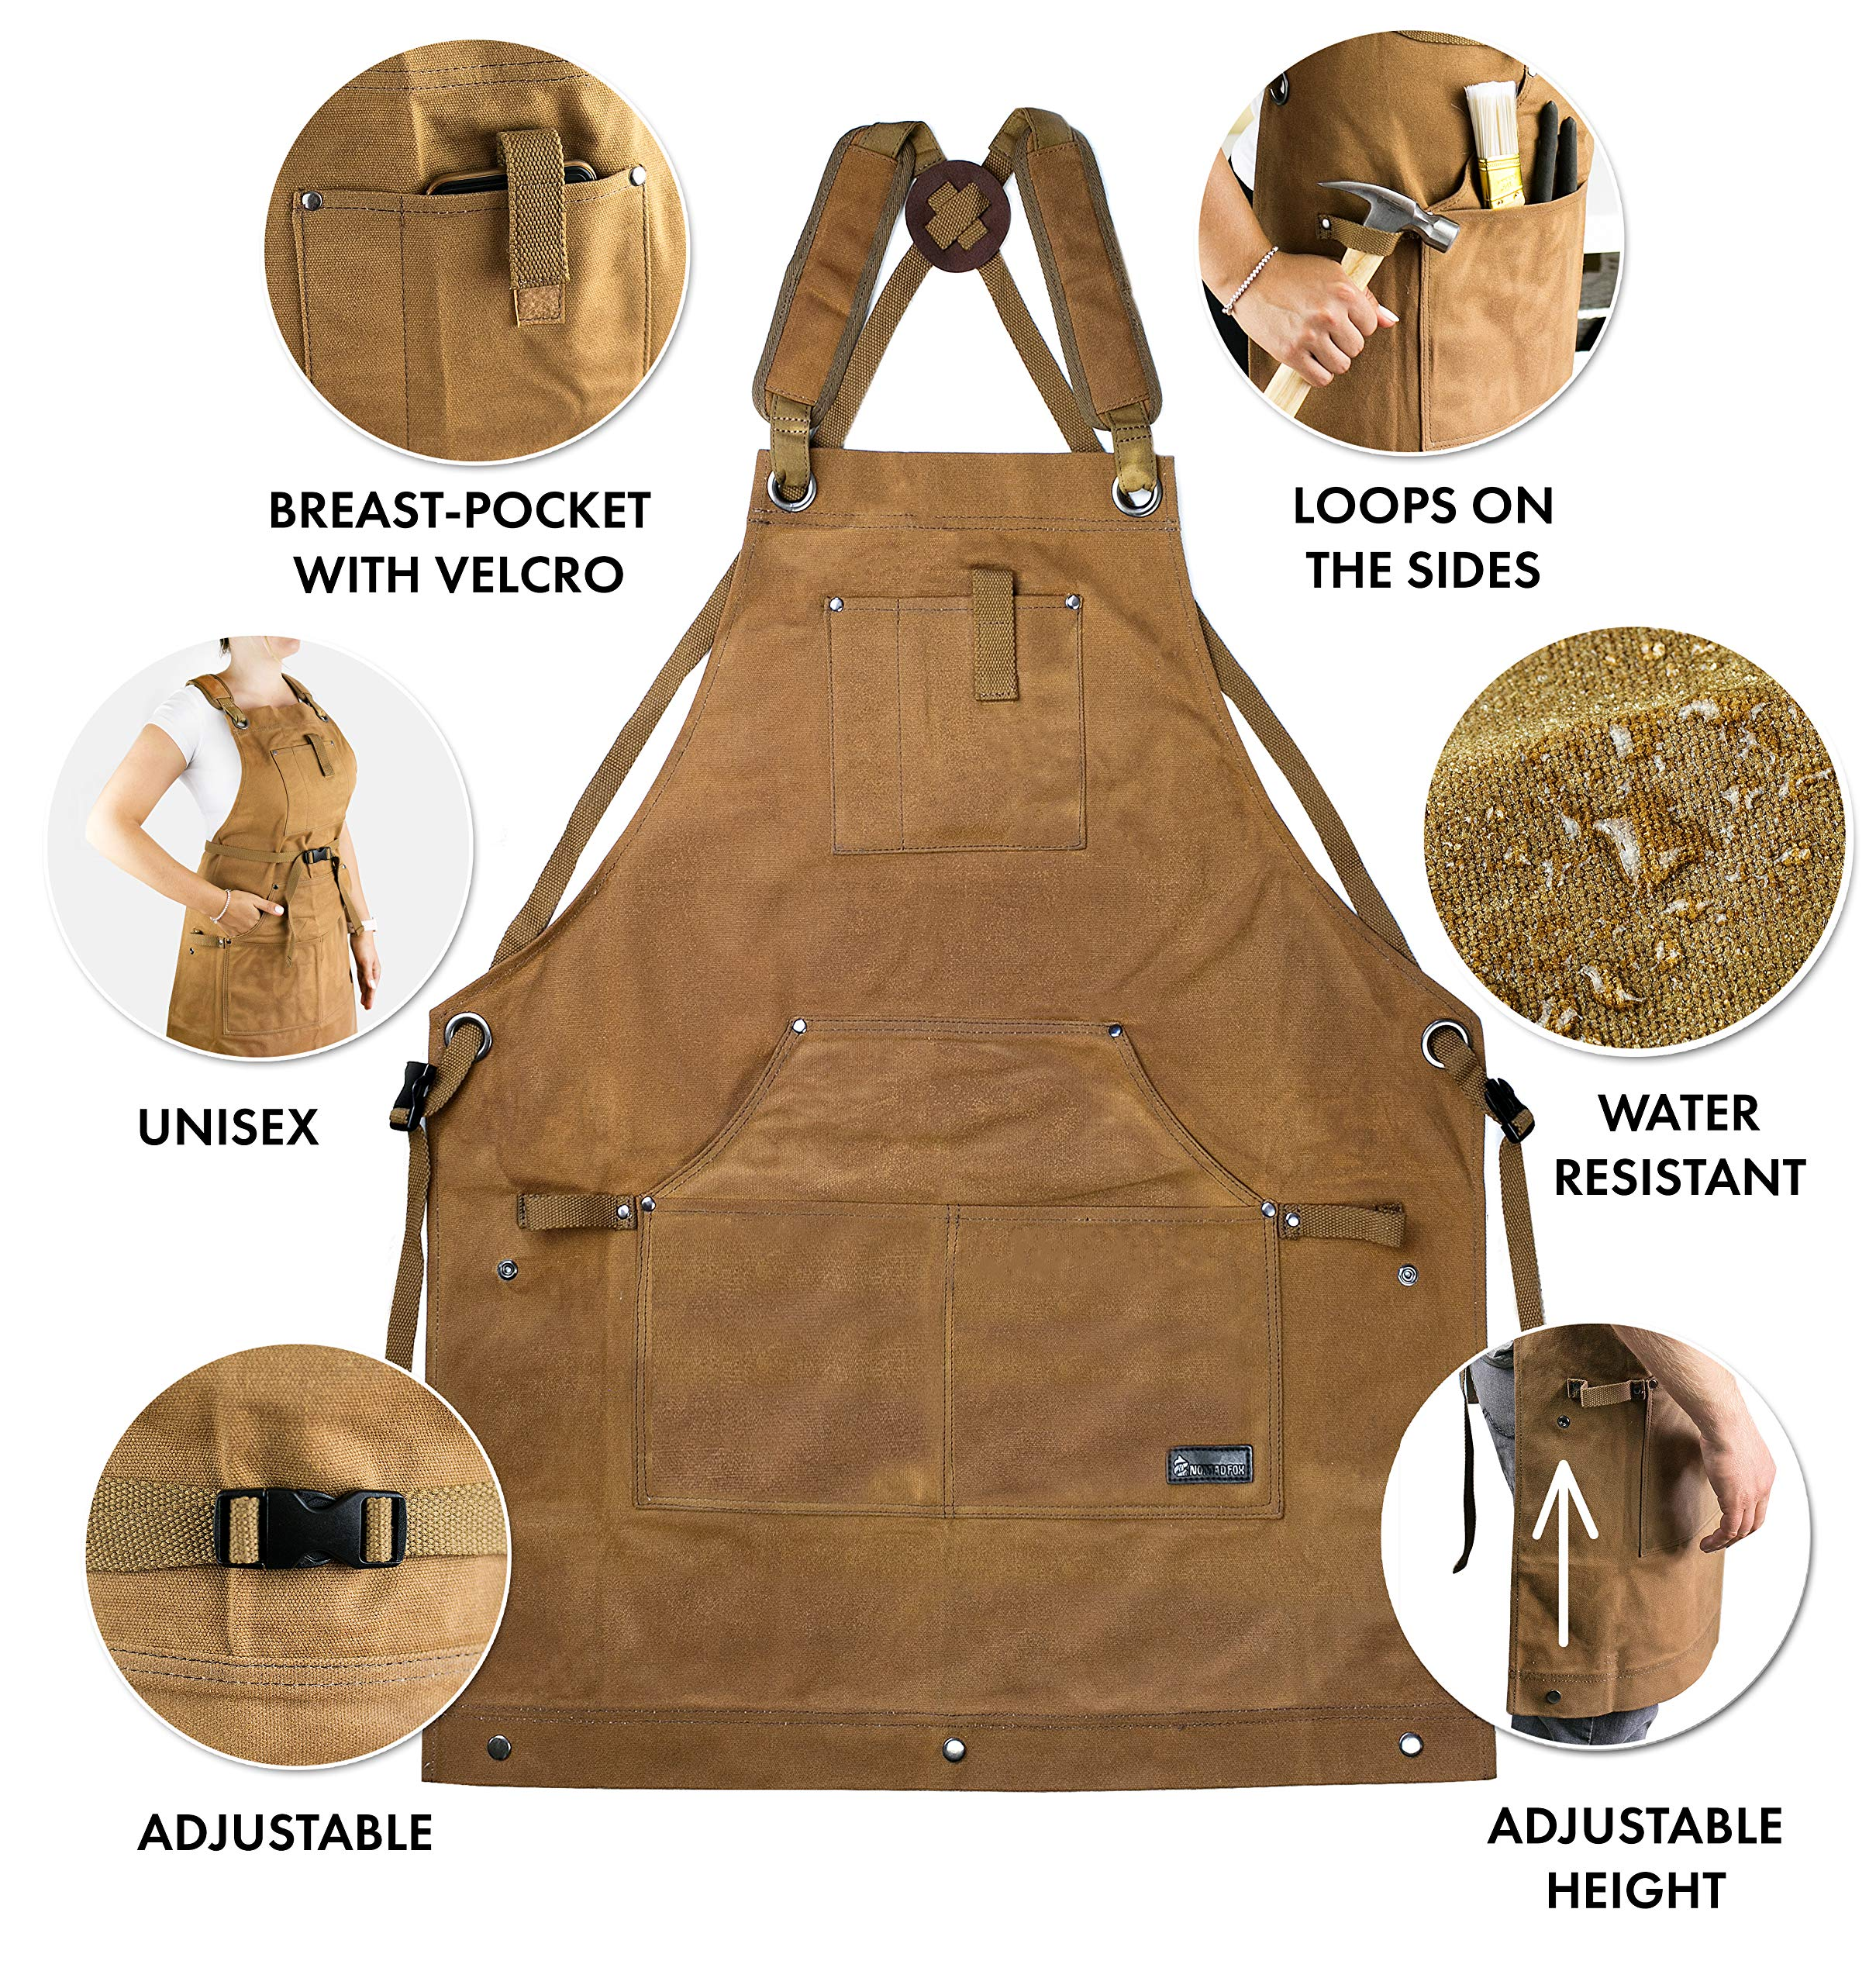 Waterproof Canvas Work Apron for Men and Women, Heavy-Duty Waxed for Durability and Safety - Brown by NomadFox (Image #6)